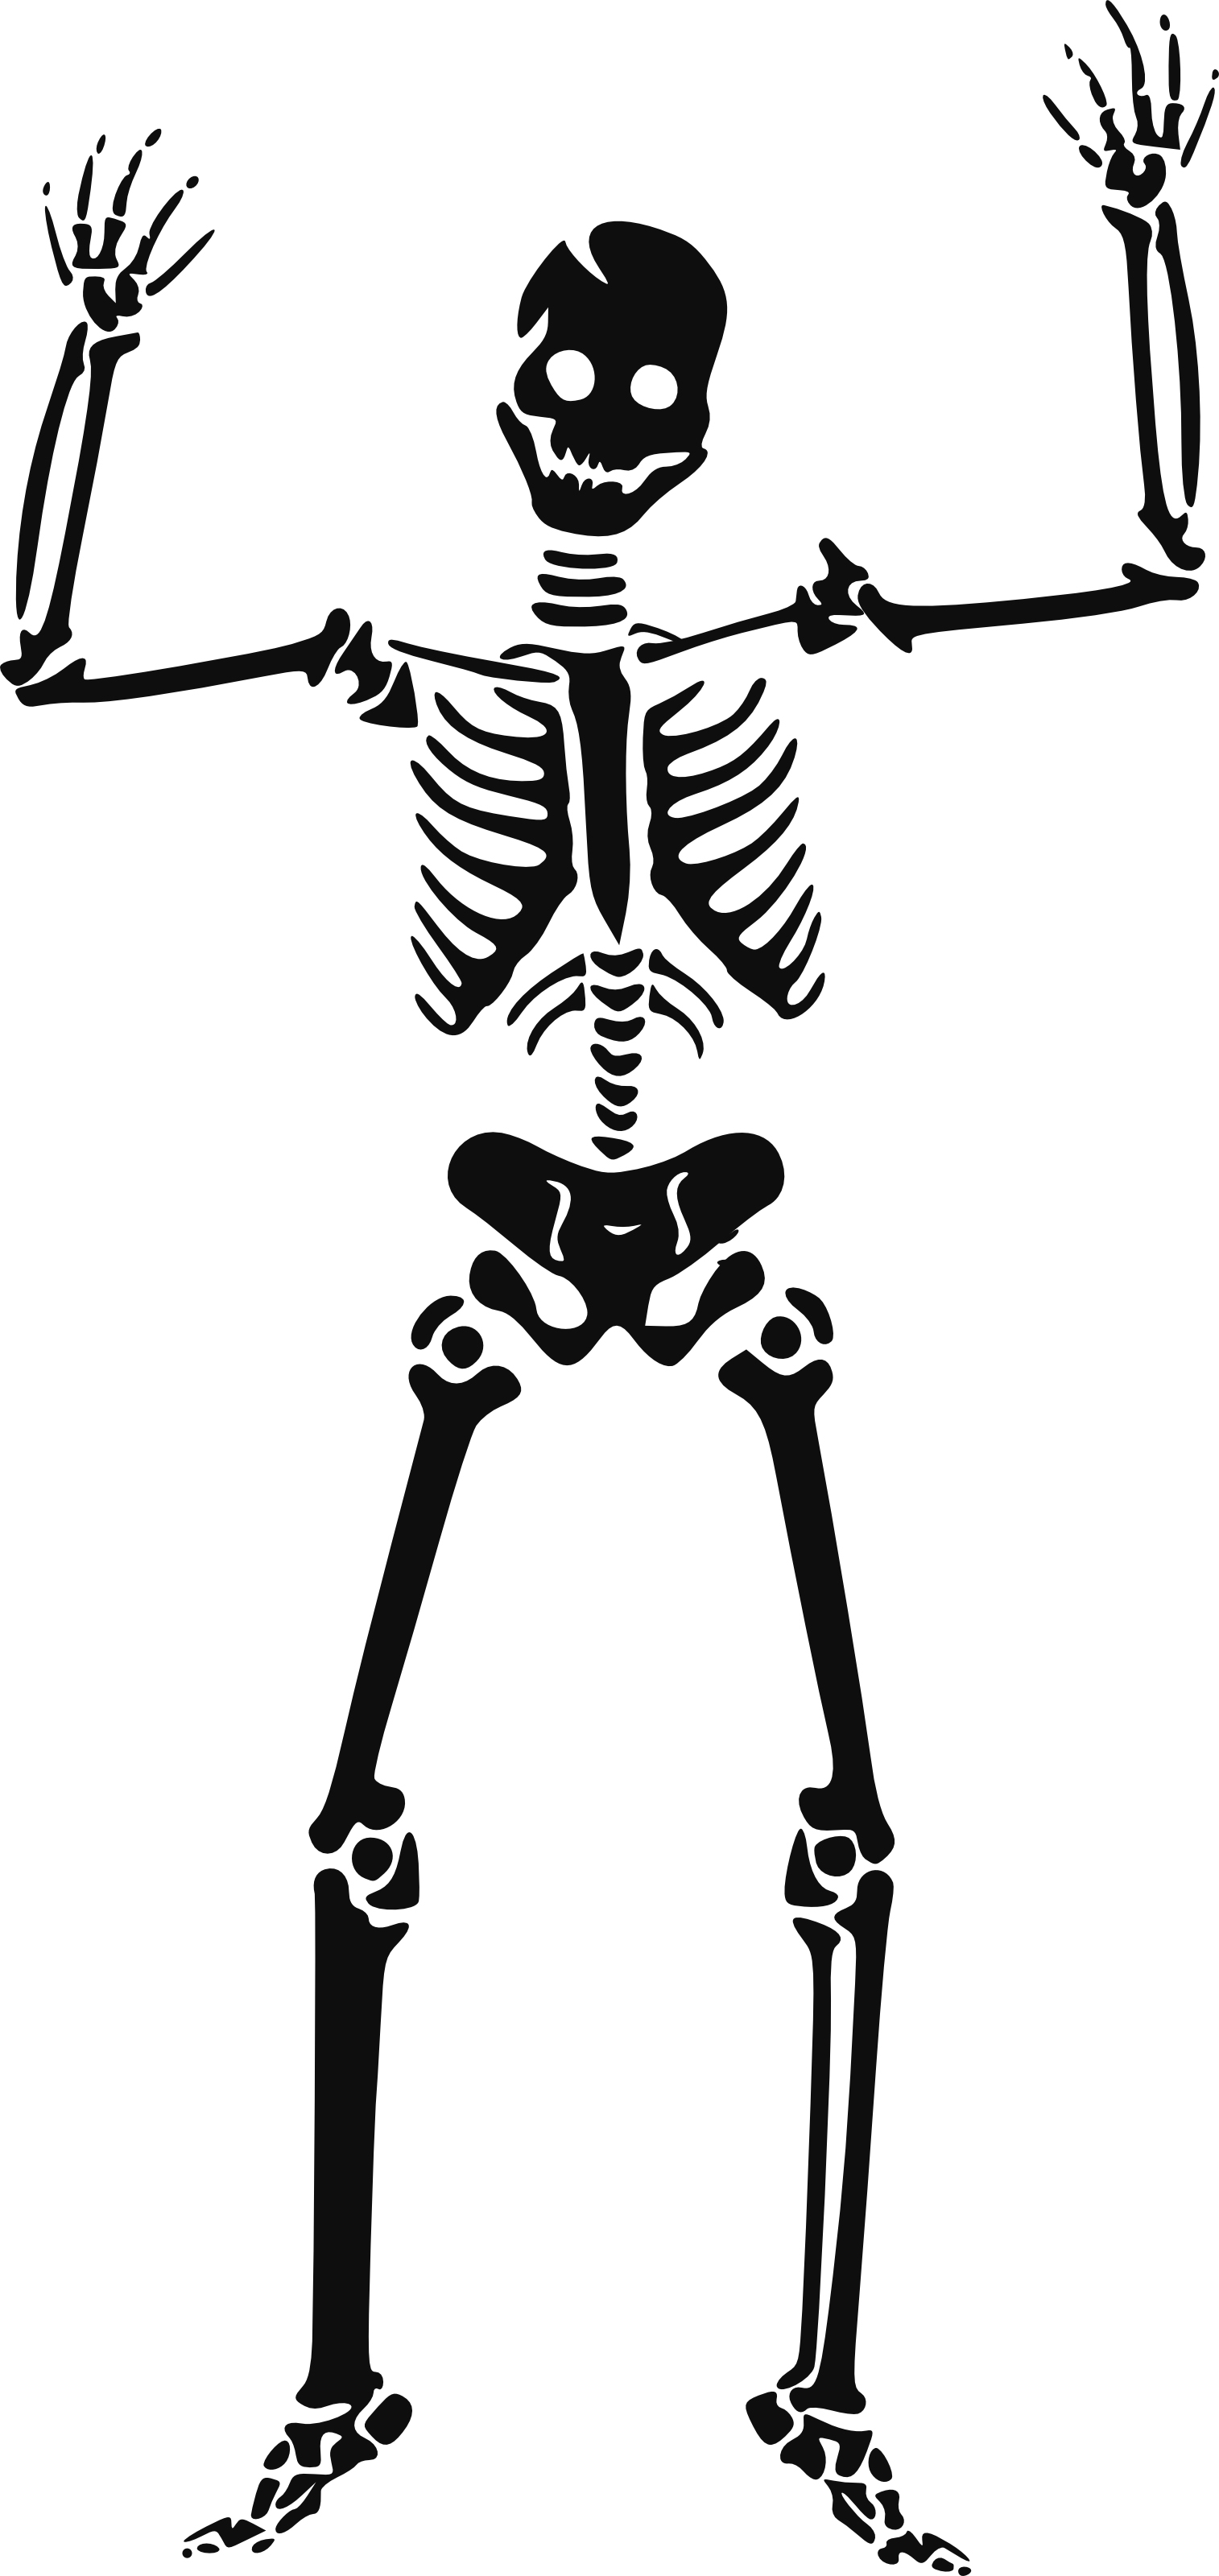 Happy skeleton clipart svg royalty free stock Free Skeleton Pictures For Halloween, Download Free Clip Art, Free ... svg royalty free stock